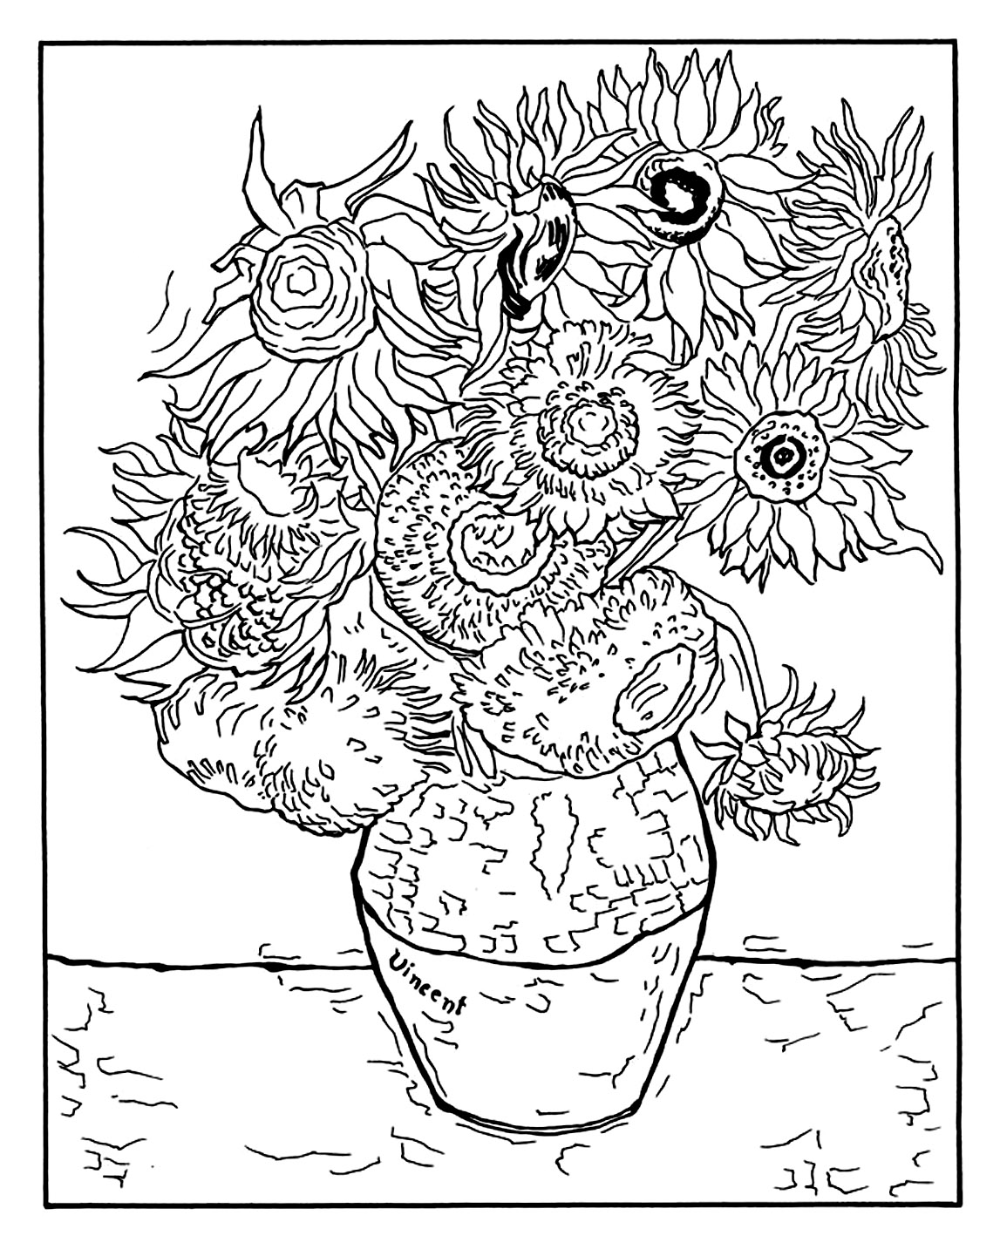 Vase With Twelve Sunflowers Coloring Page Created From Vase With Twelve Sunflowers By Vincen Van Gogh Coloring Famous Art Coloring Sunflower Coloring Pages